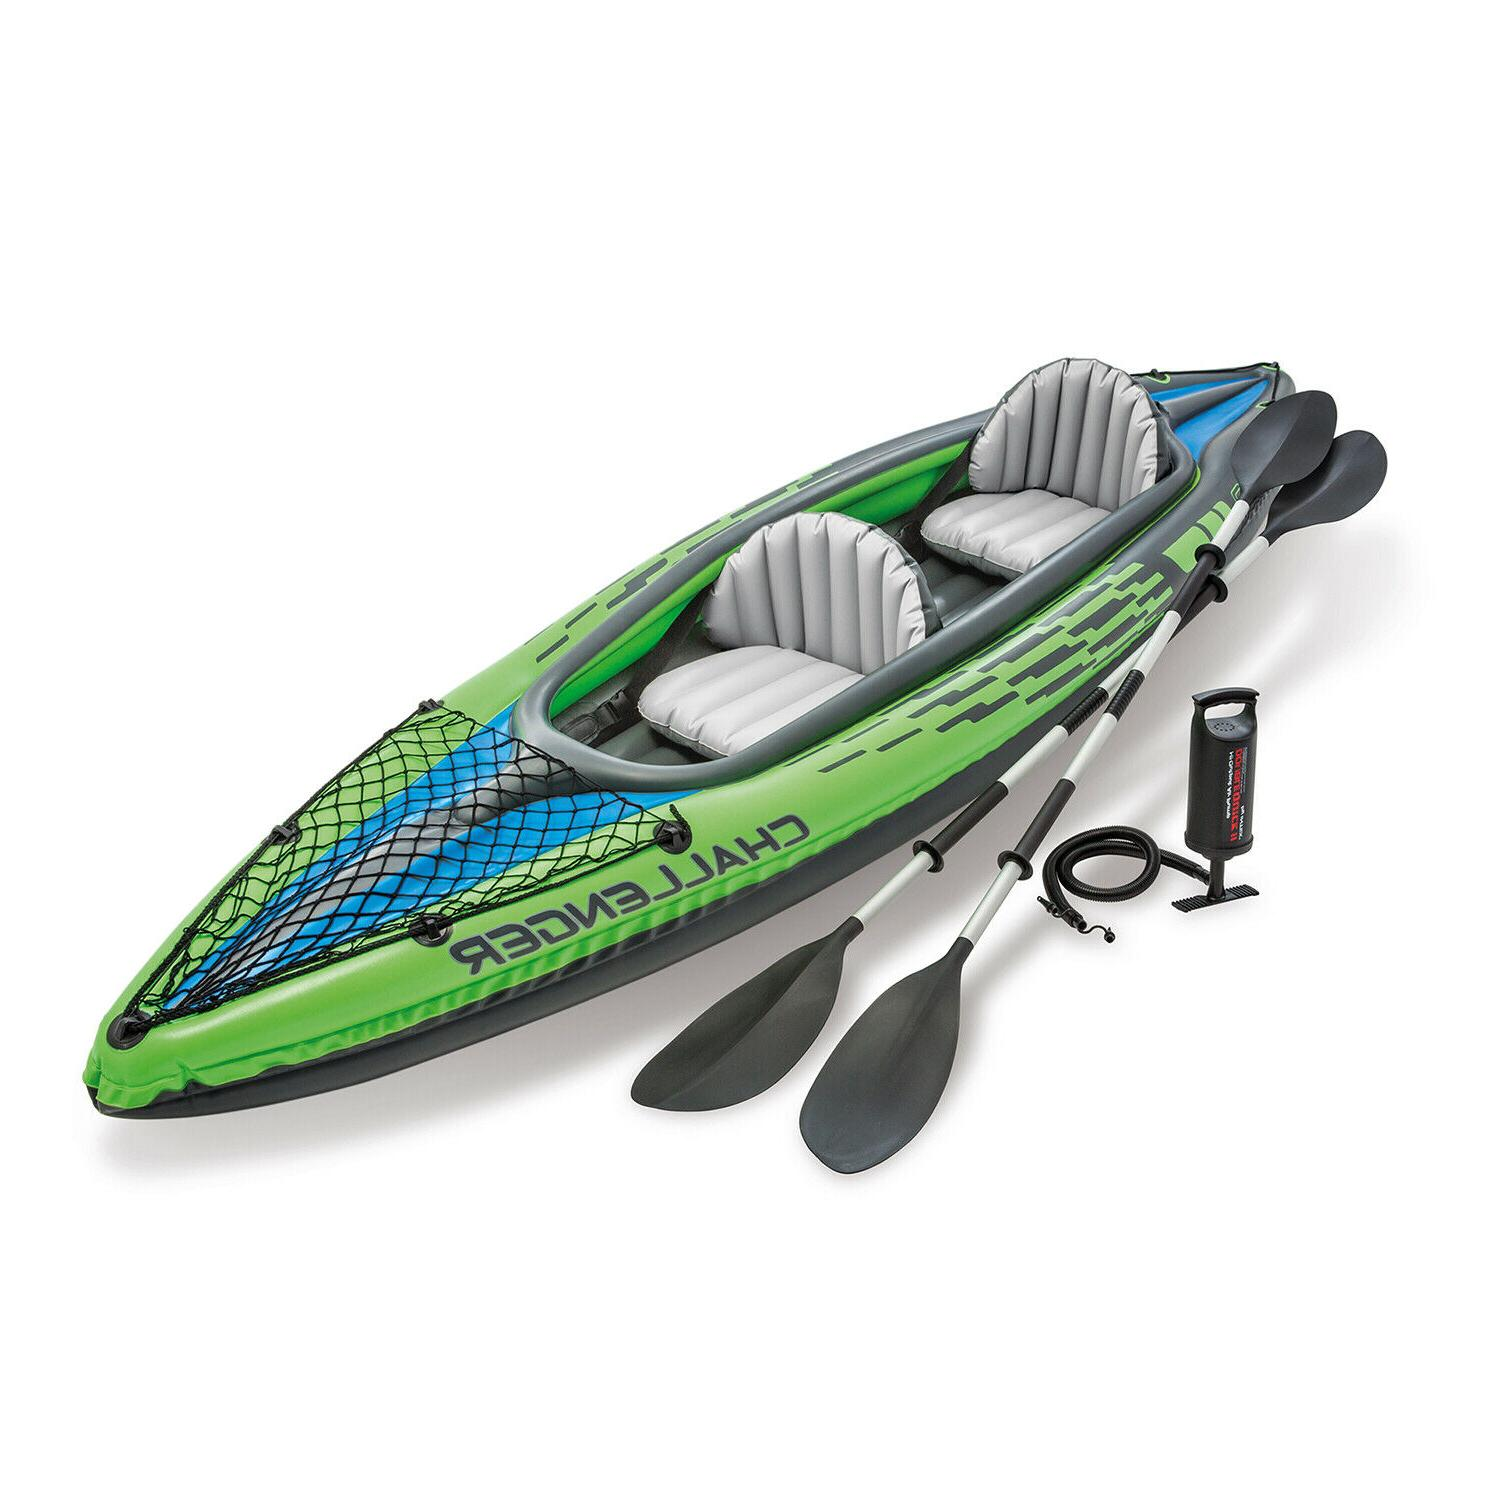 Vacation Recreation Outdoor Water Sports Inflatable Kayak w